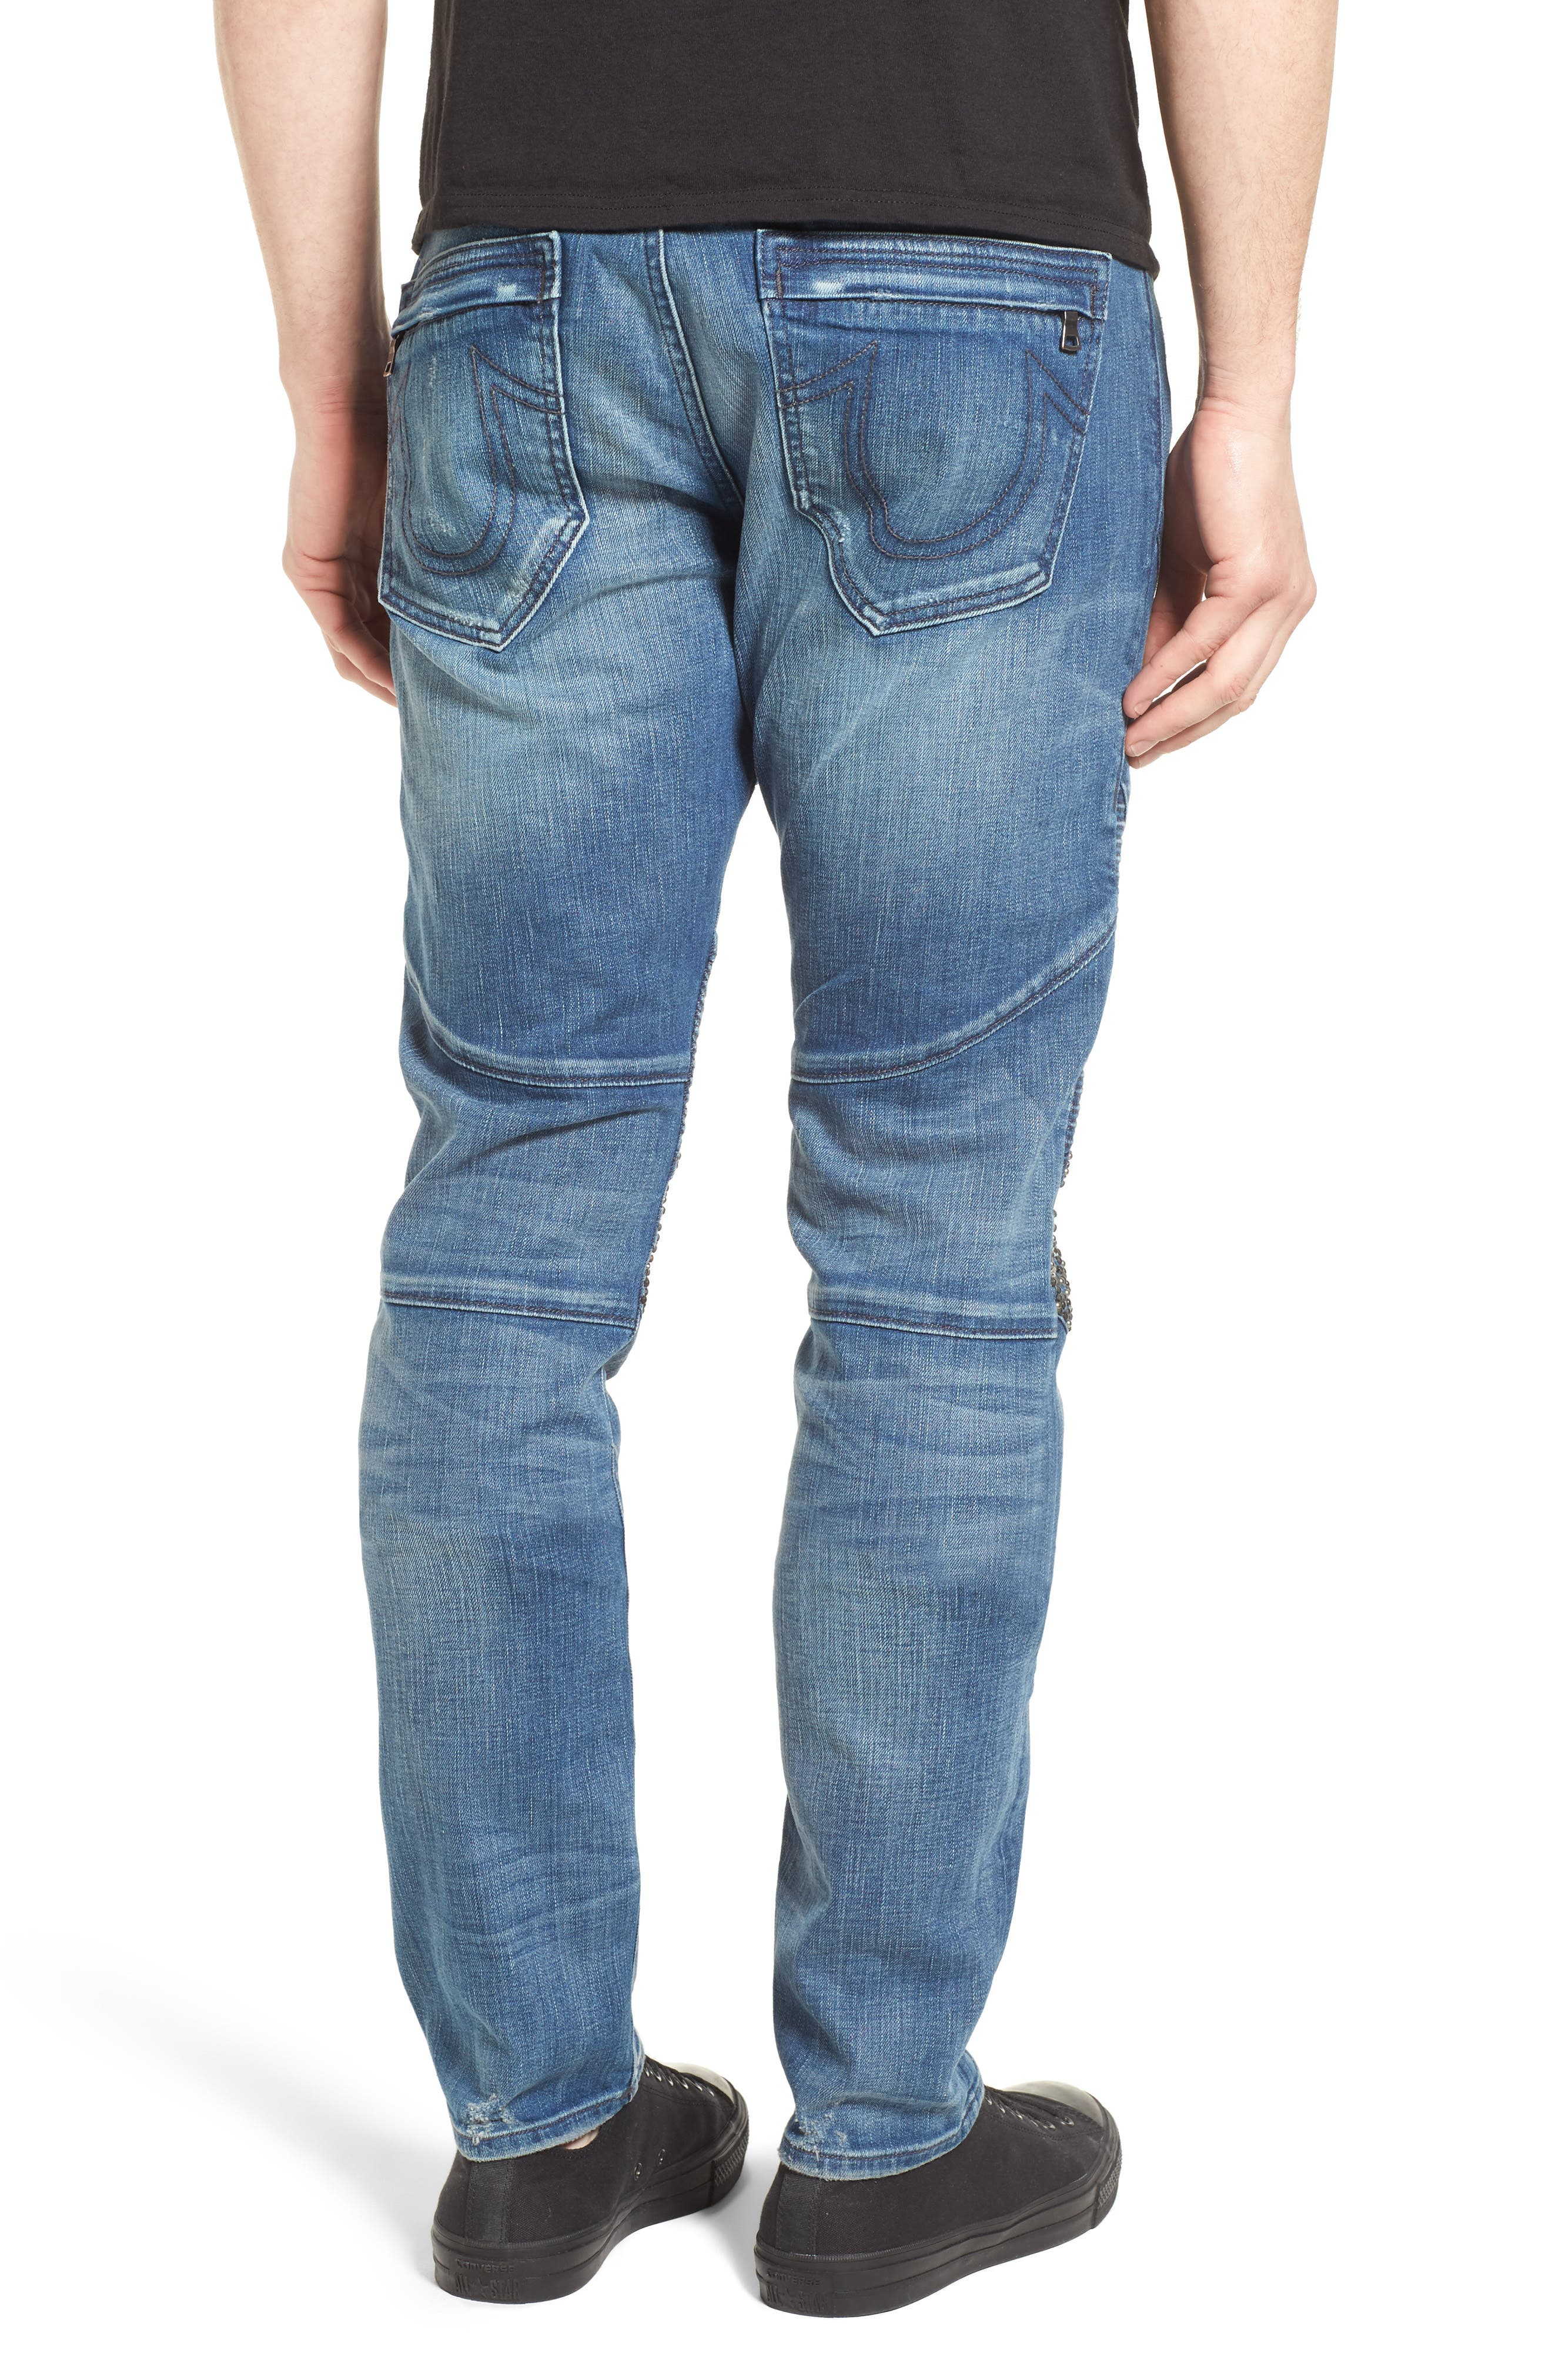 TRUE RELIGION BRAND JEANS,                             Rocco Skinny Fit Jeans,                             Alternate thumbnail 2, color,                             ENDLESS ROAD